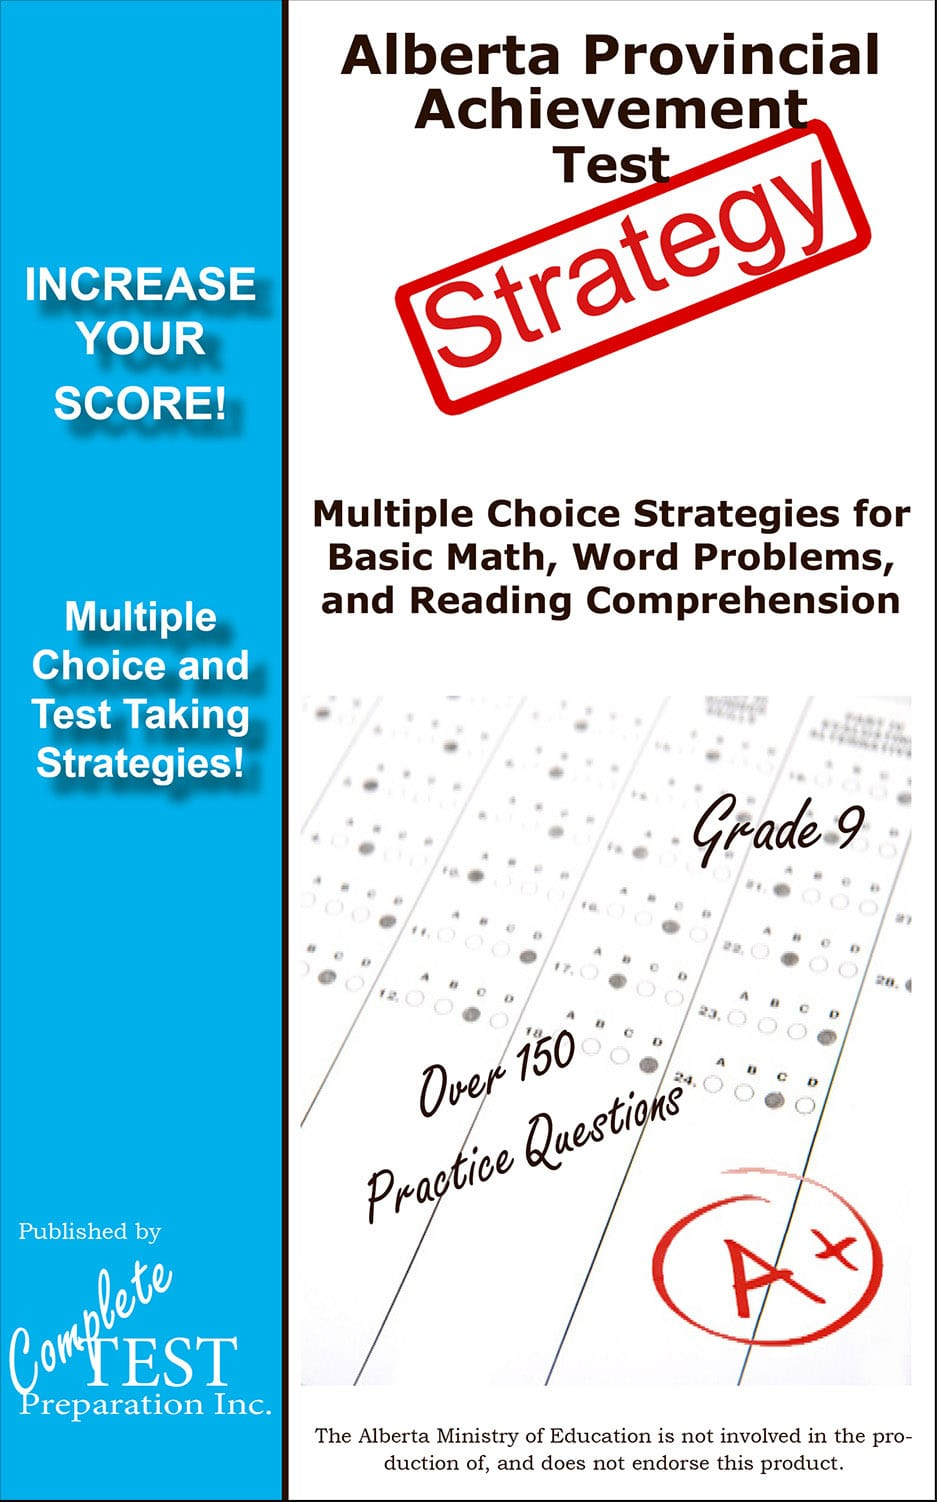 60 Practice Questions For The Alberta Provincial Achievement Test Alberta reading comprehension practice